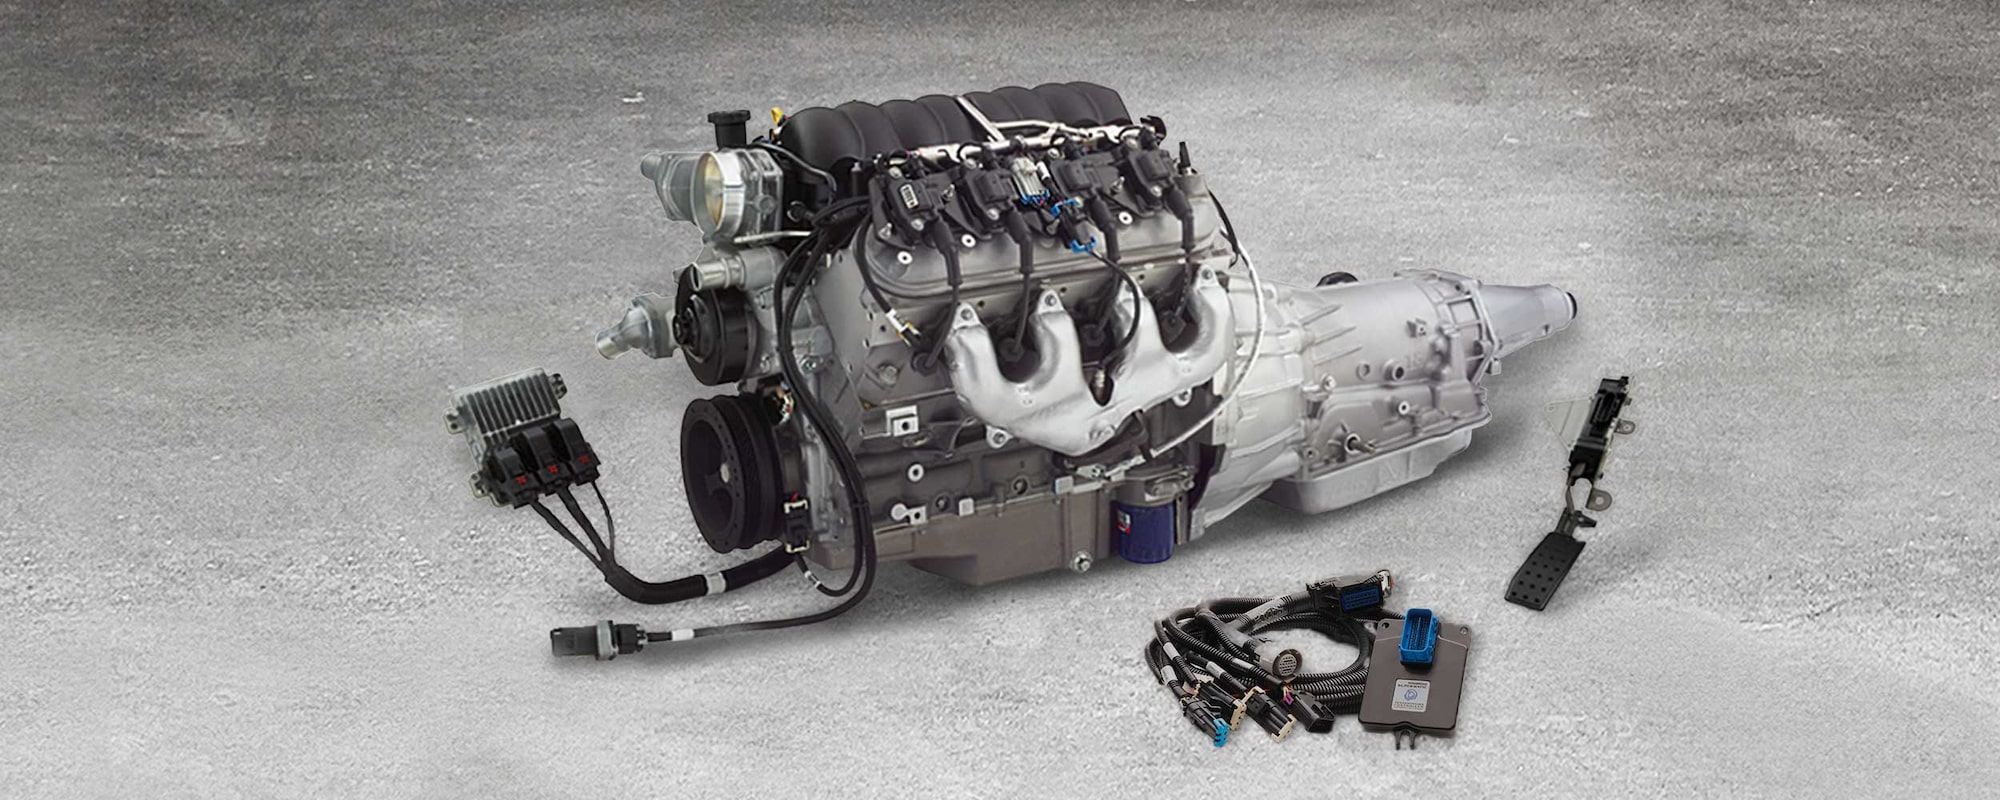 connect and cruise powertrain system chevrolet performance rh chevrolet com